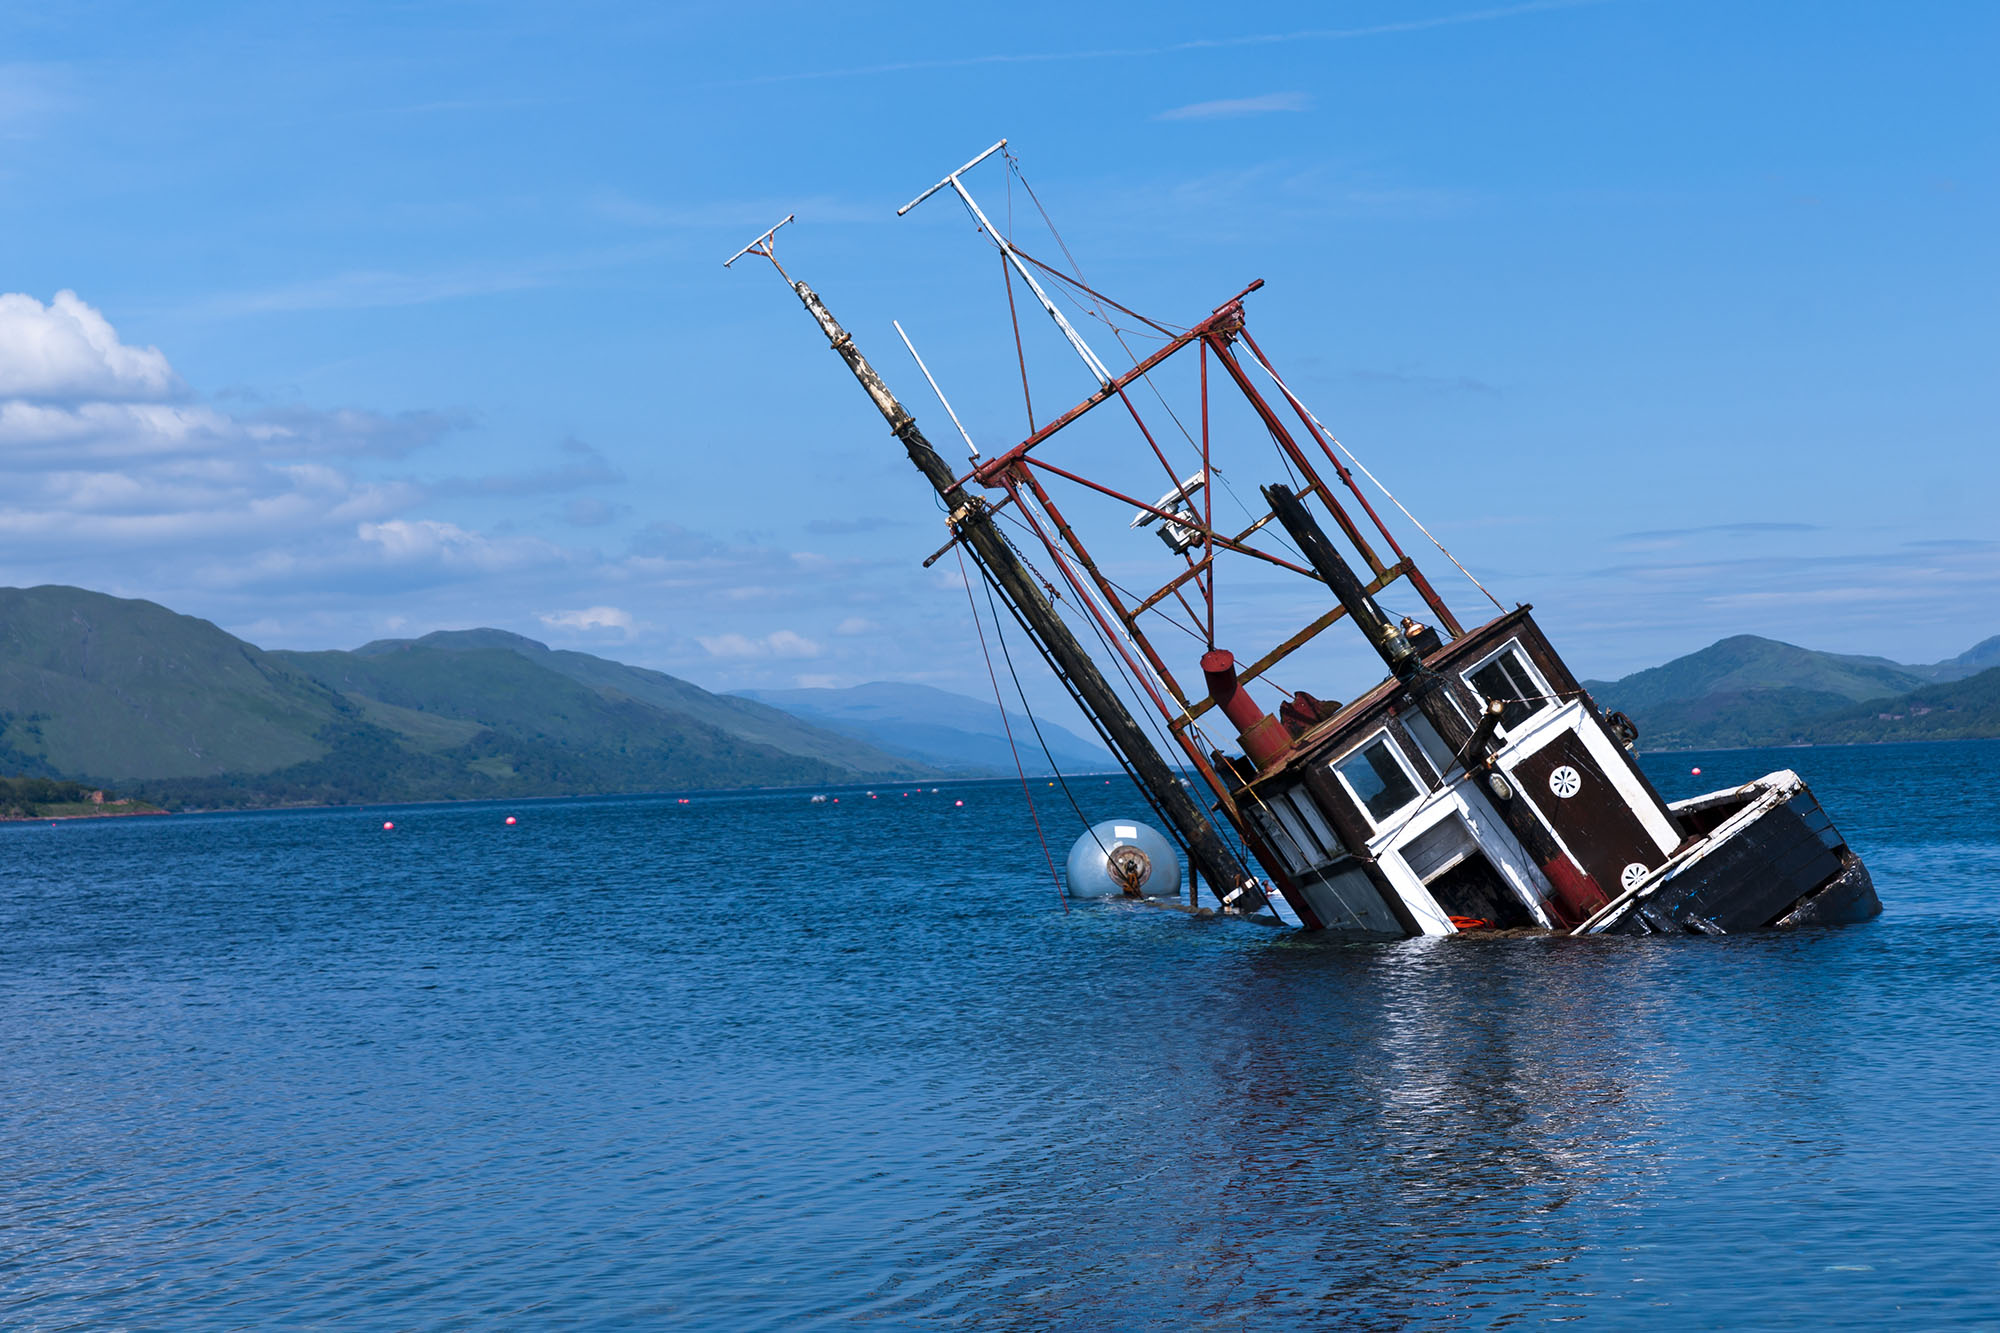 capsized boat accidental death drowning at work solicitors Aberdeen